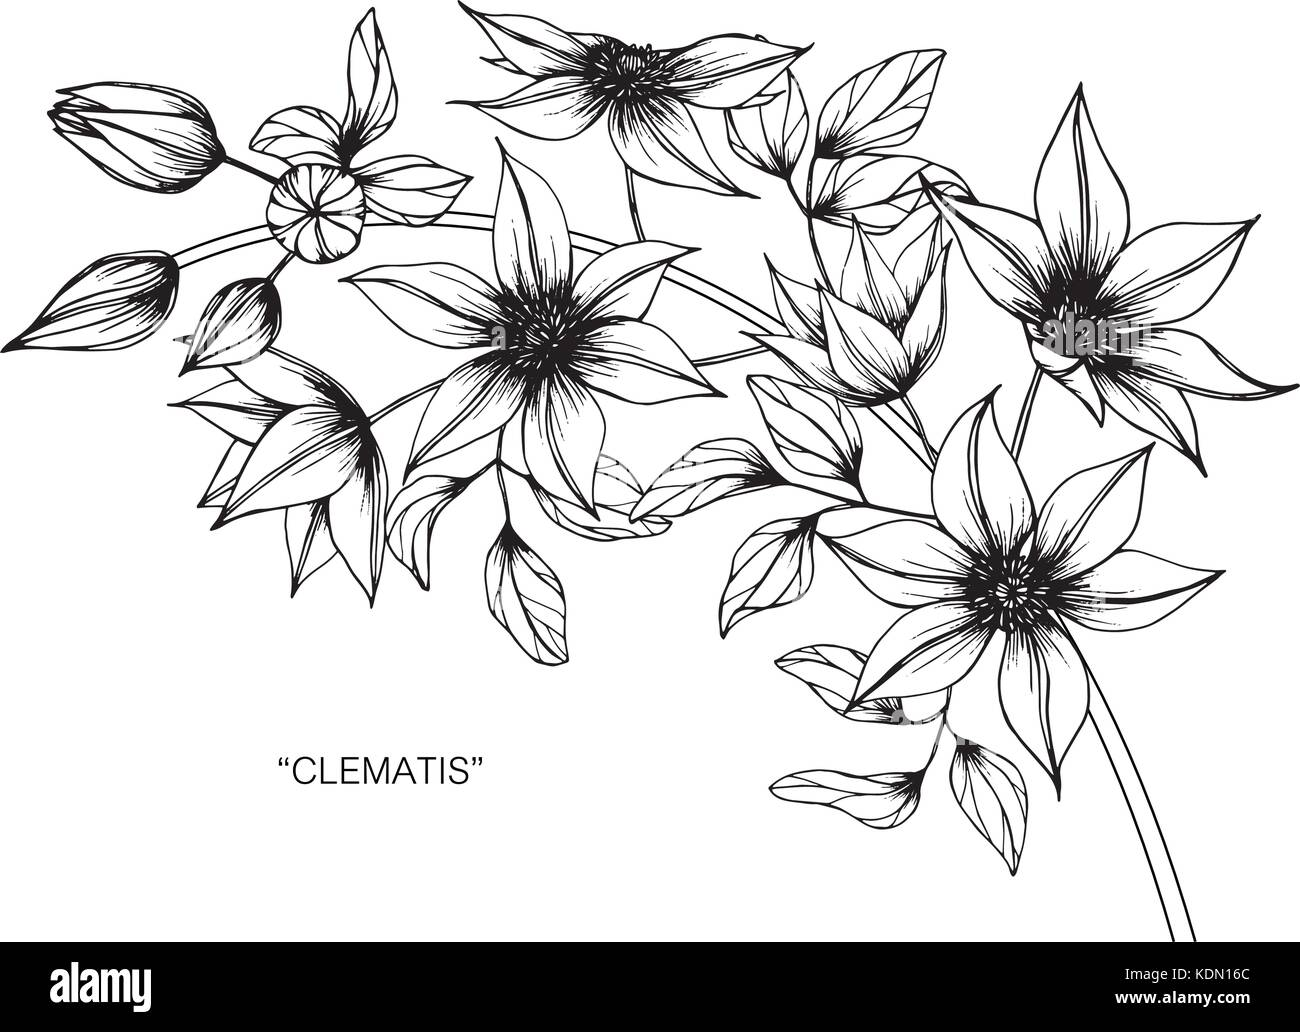 Vintage Flower Illustrations Stock Photos Vintage Flower